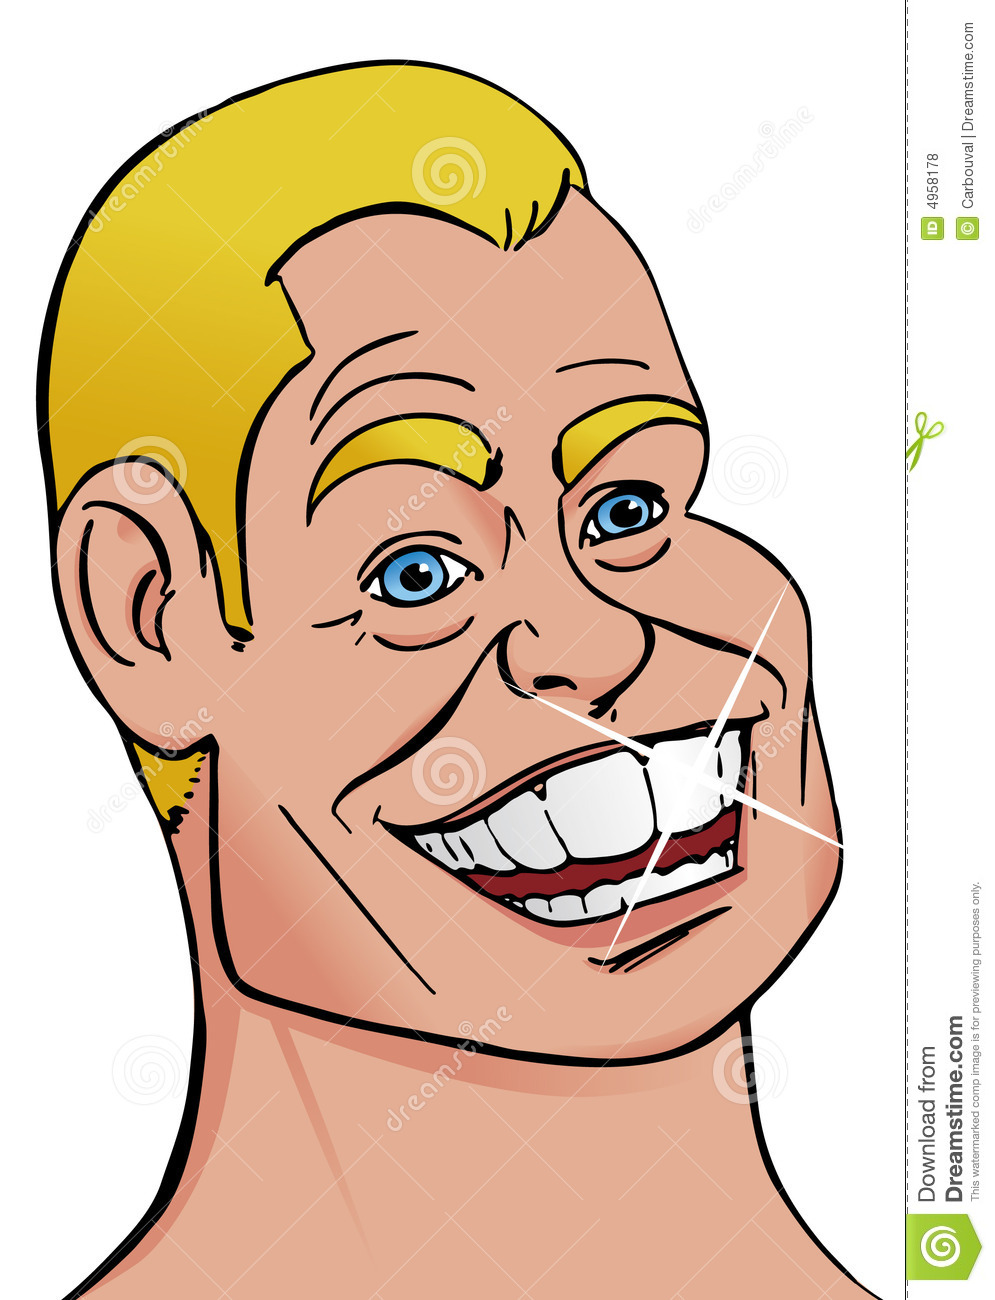 995x1300 Smile People Clipart, Explore Pictures